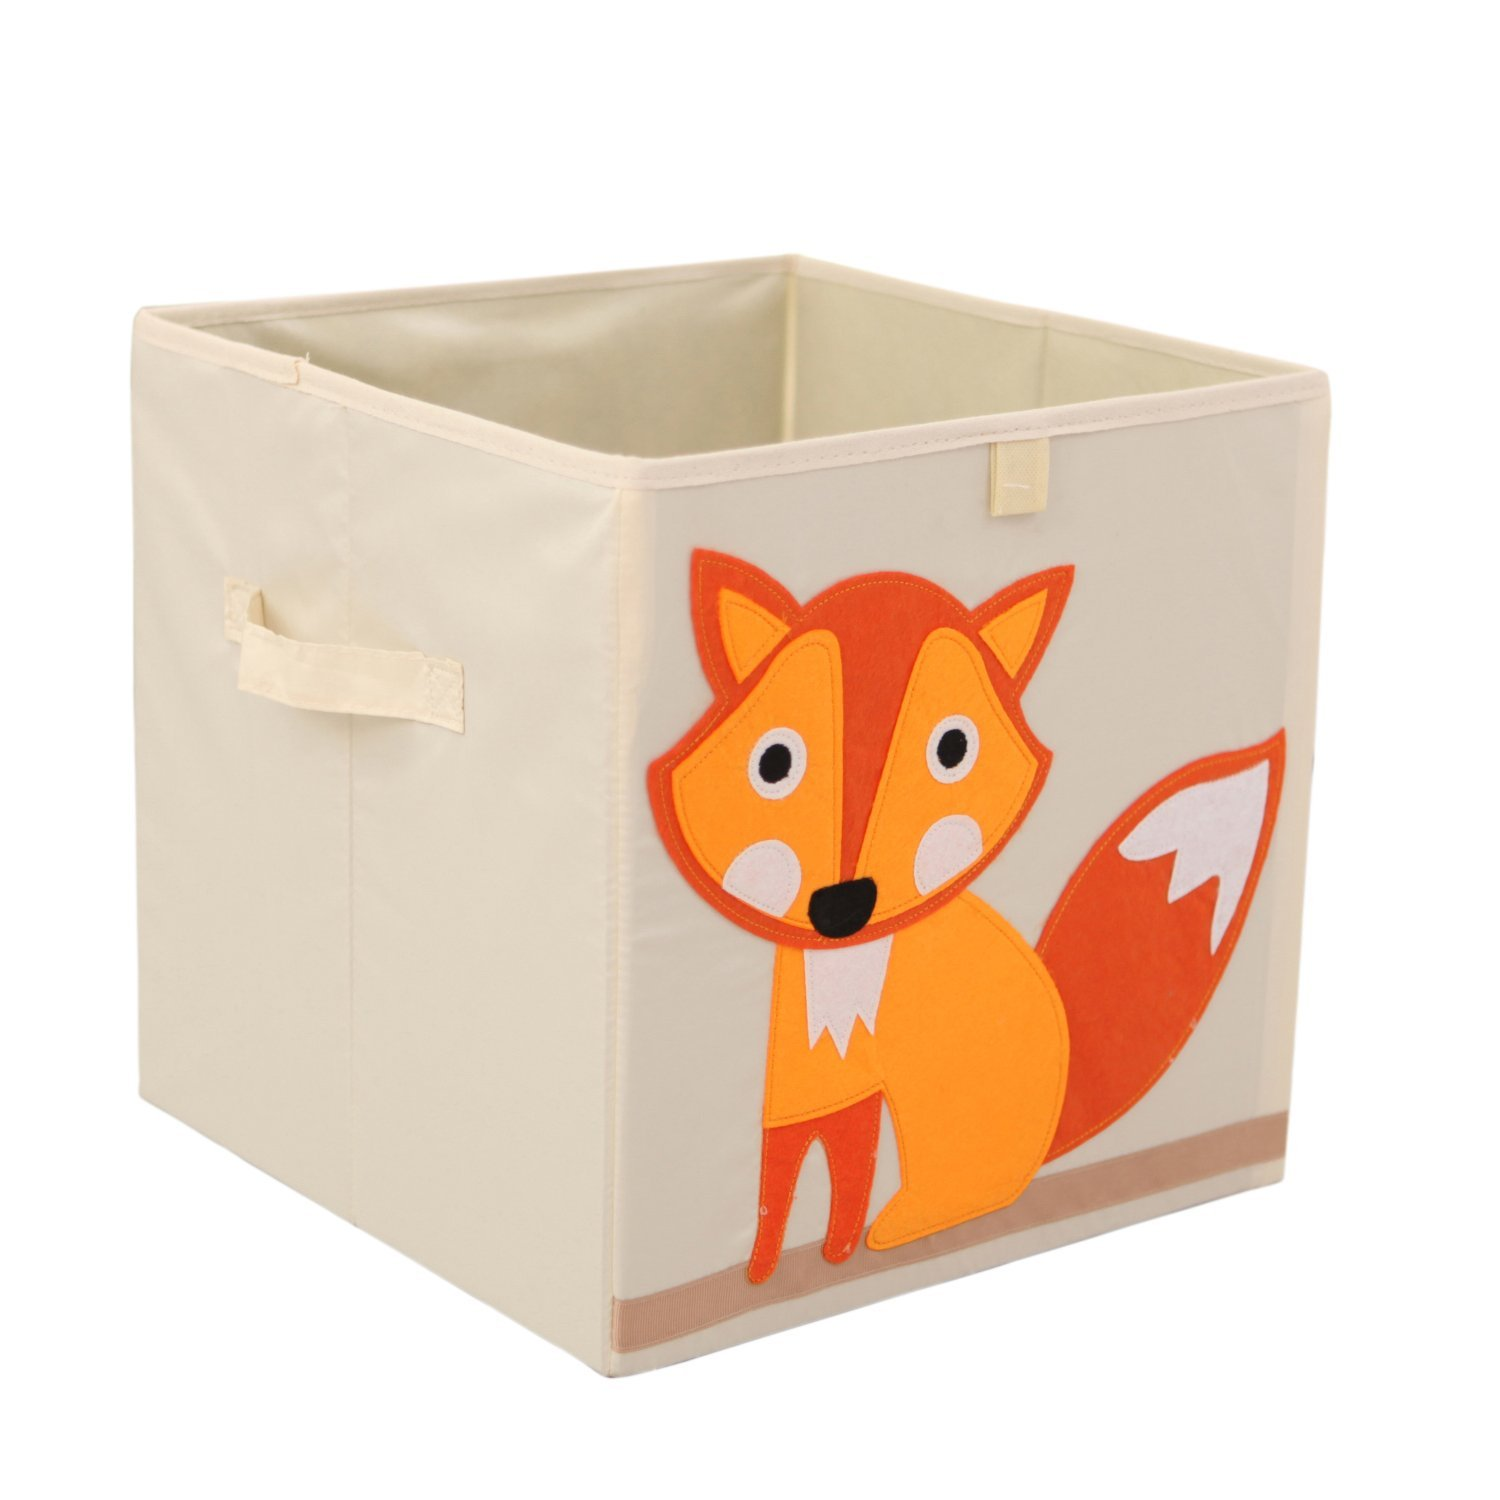 Square Collapsible Canvas Storage Box Foldable Kids Toys: Amazon.com : 3 Sprouts Storage Box, Peacock : Nursery